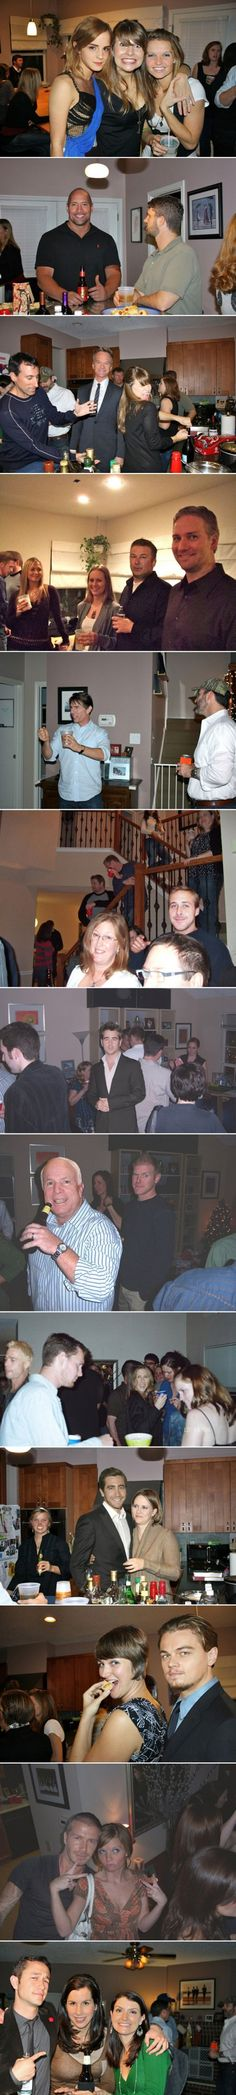 Photoshoped celebs on facebook party pics. Interesting...